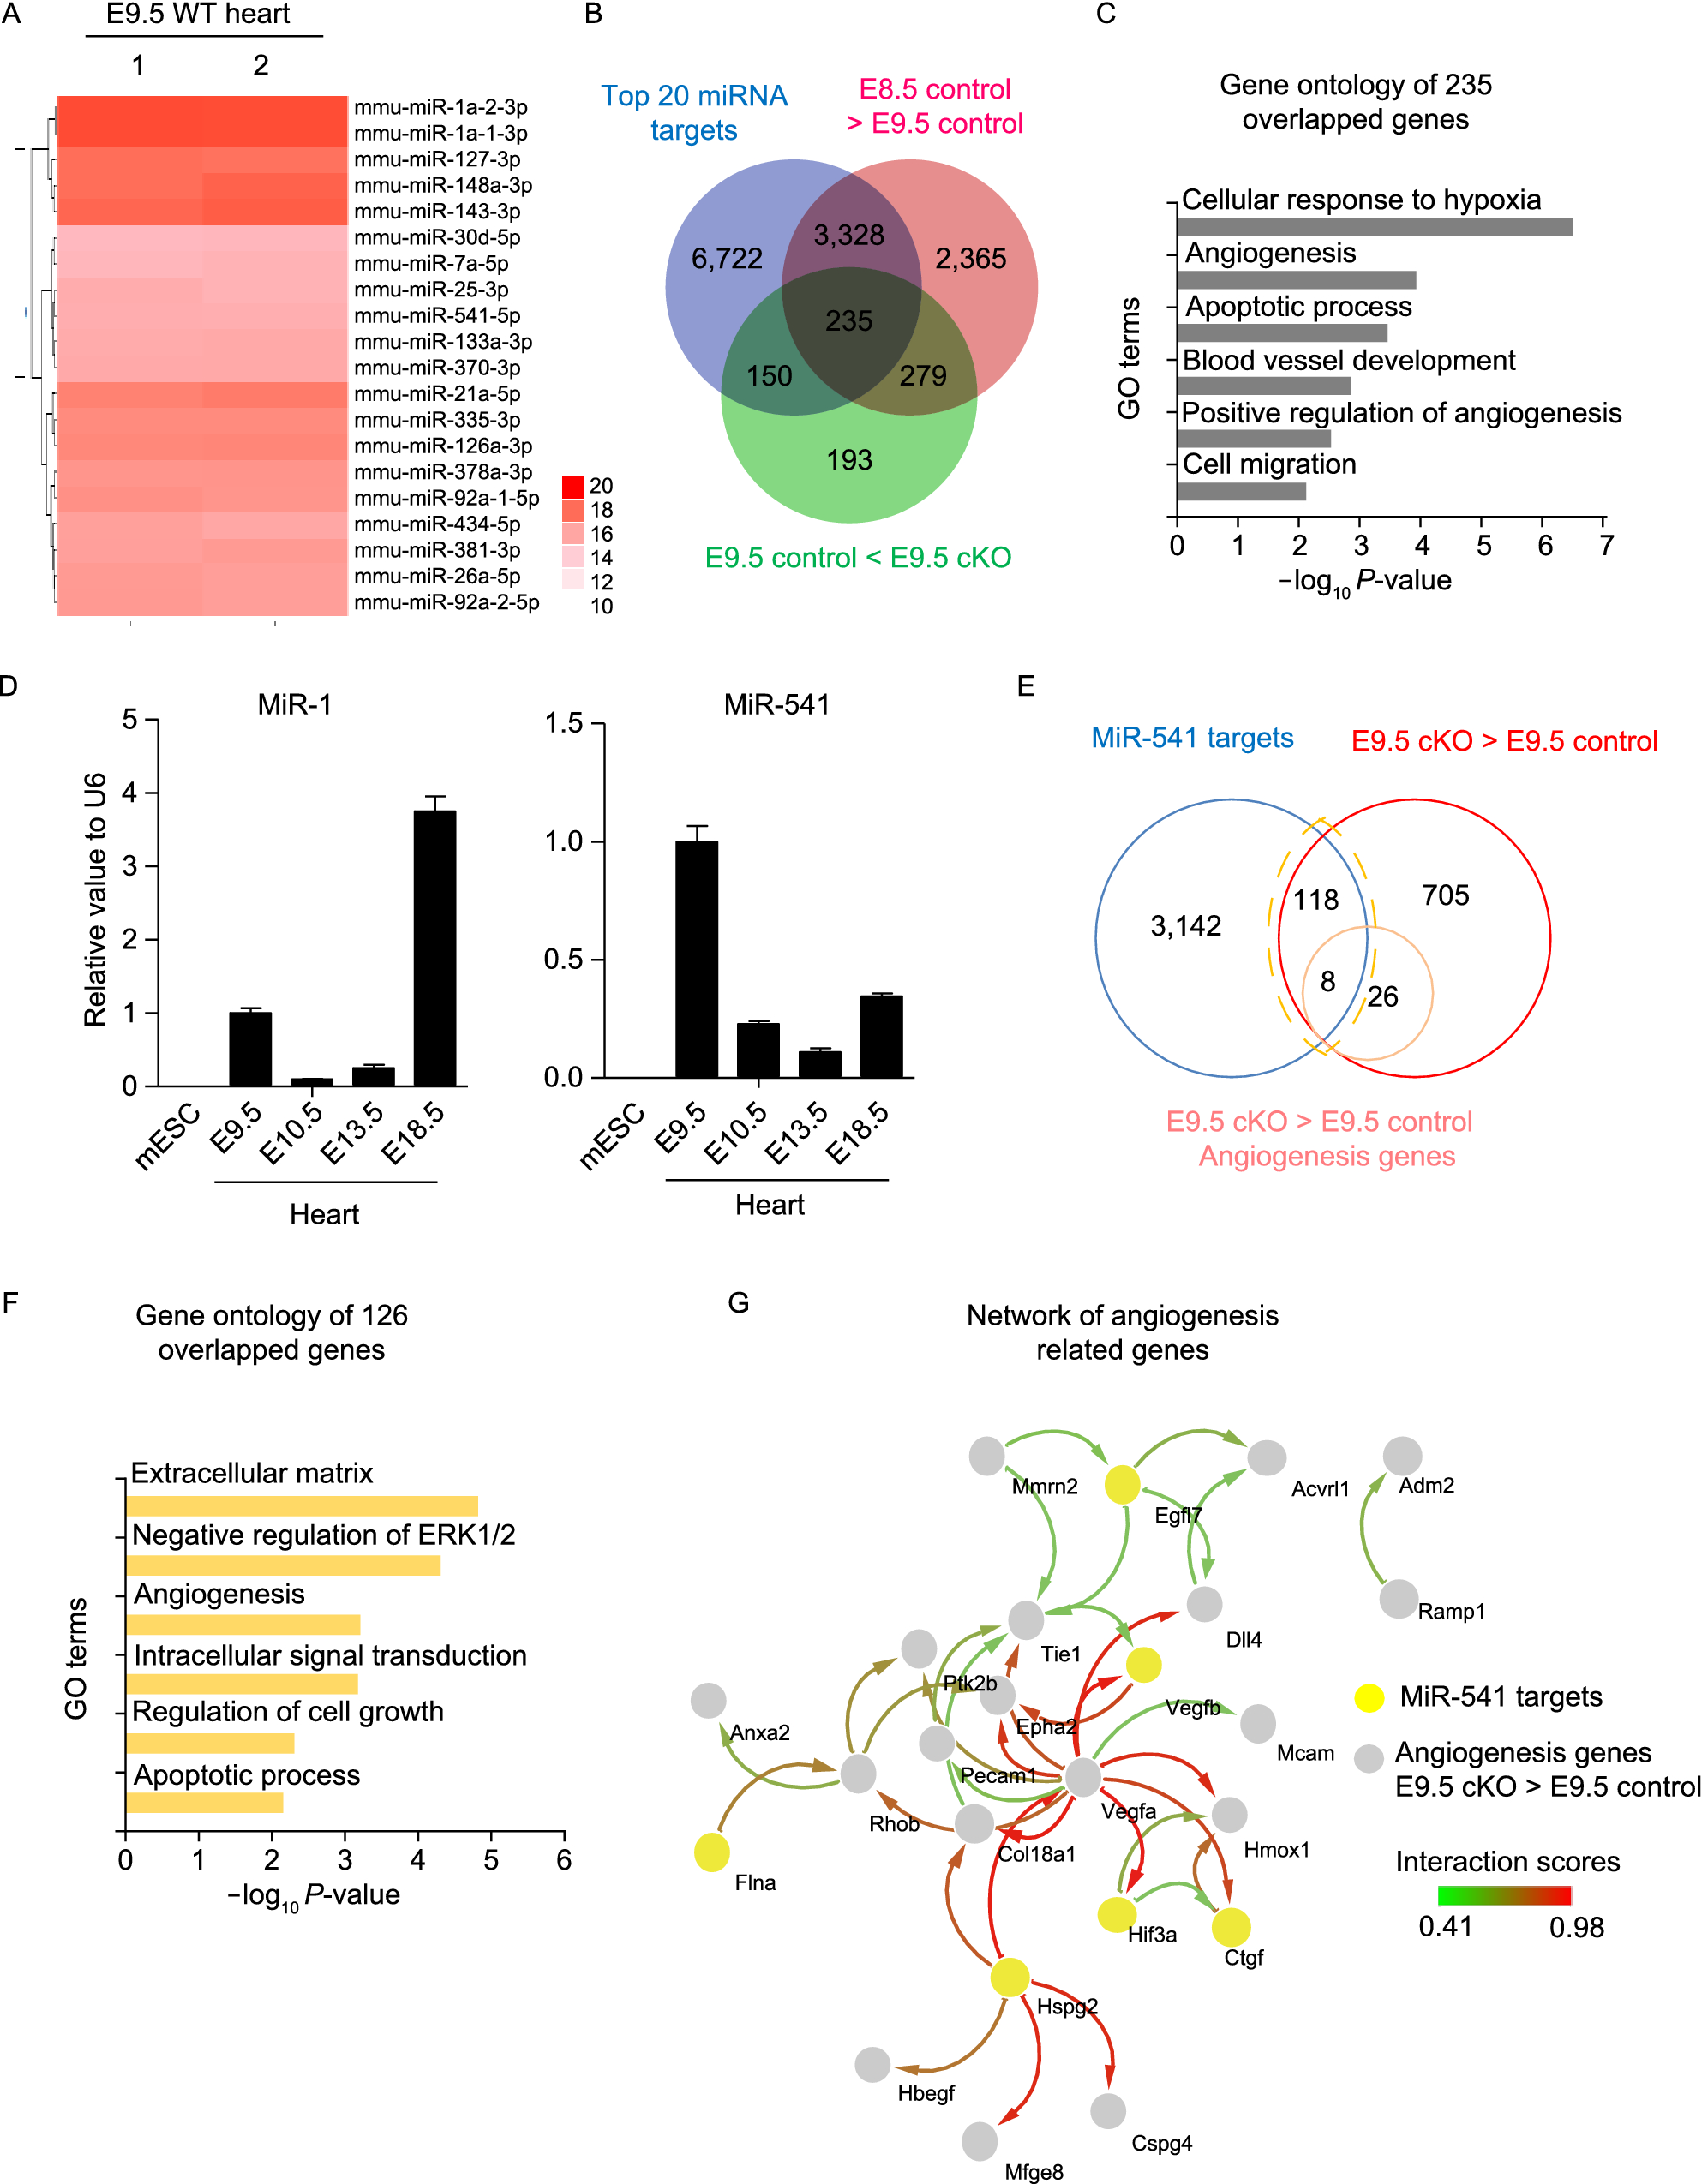 Dgcr8 Deletion In The Primitive Heart Uncovered Novel Microrna Figure 4 Circuit Of Fig 3 But With R1 Replaced By A Short